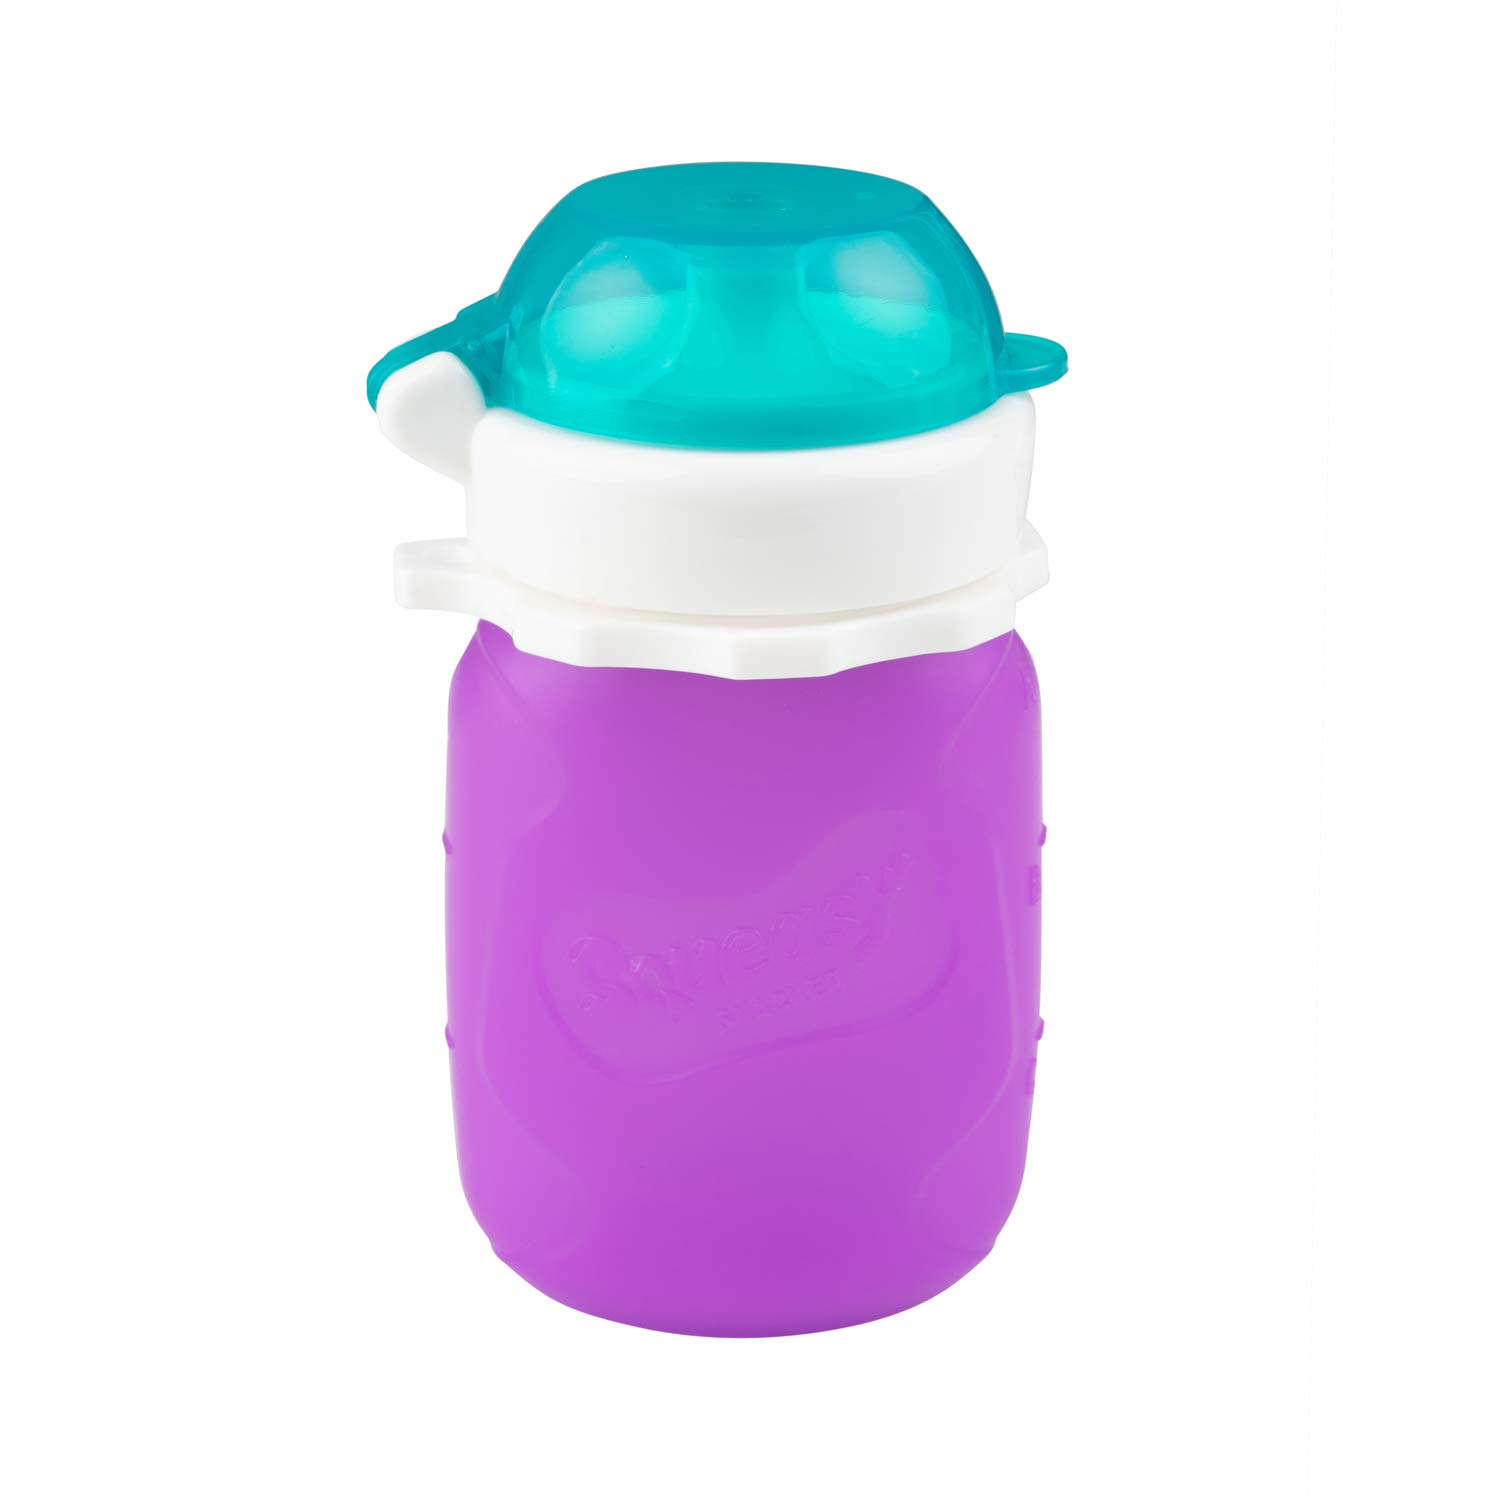 Purple 3.5 oz Squeasy Snacker Spill Proof Silicone Reusable Food Pouch - for Both Soft Foods and Liquids - Water, Apple Sauce, Yogurt, Smoothies, Baby Food - Dishwasher Safe